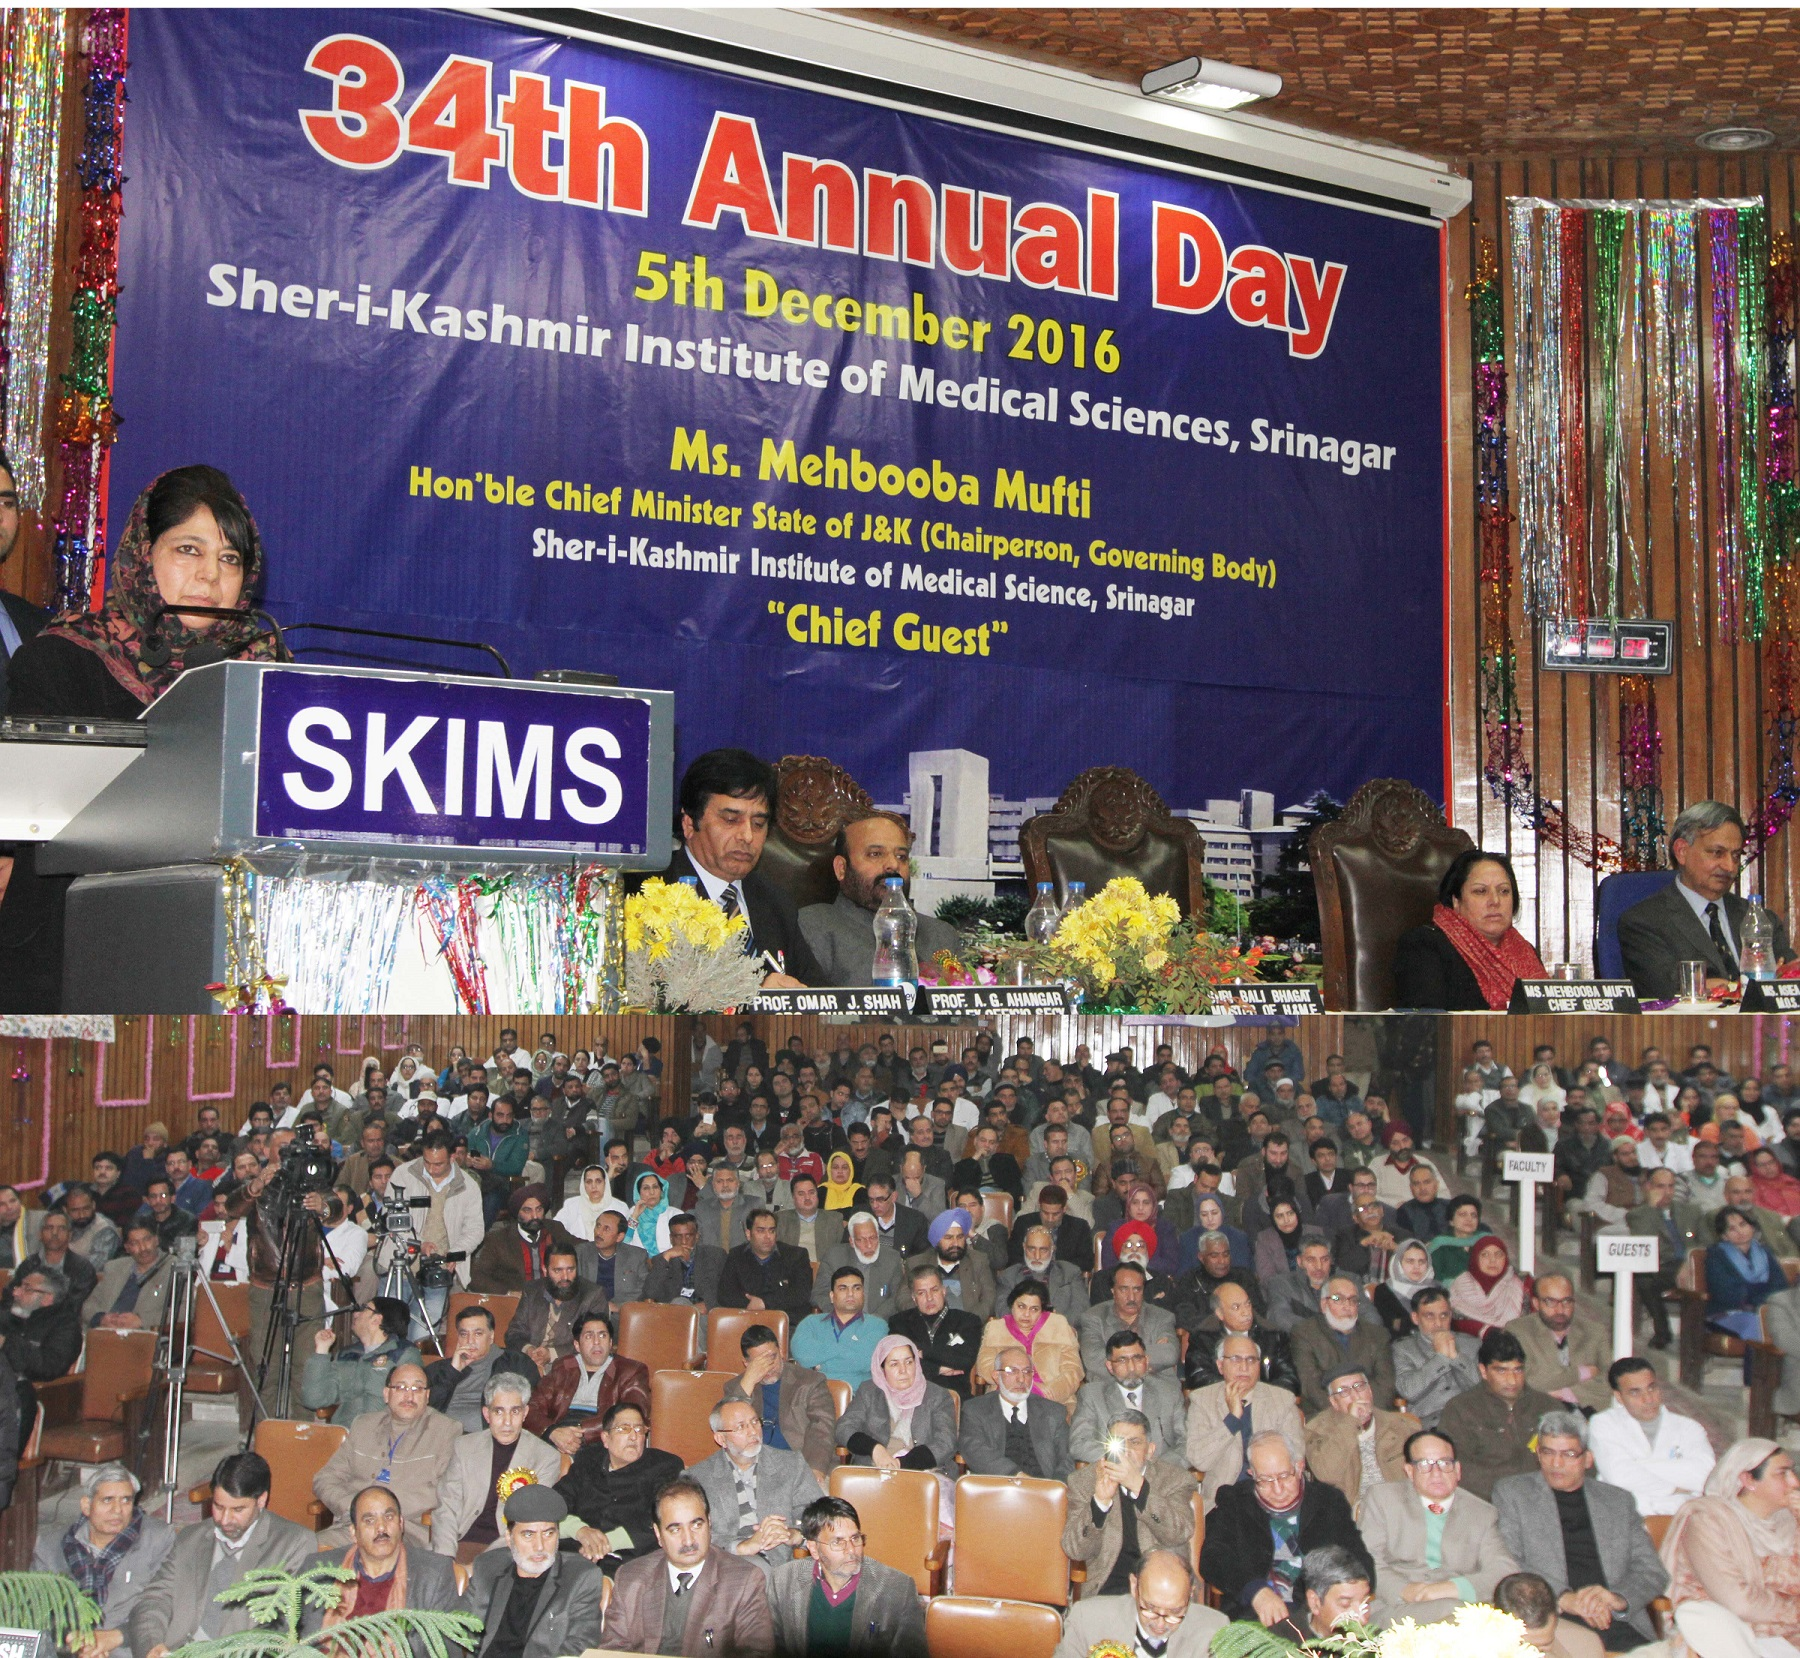 SKIMS celebrates its 34th Annual Day